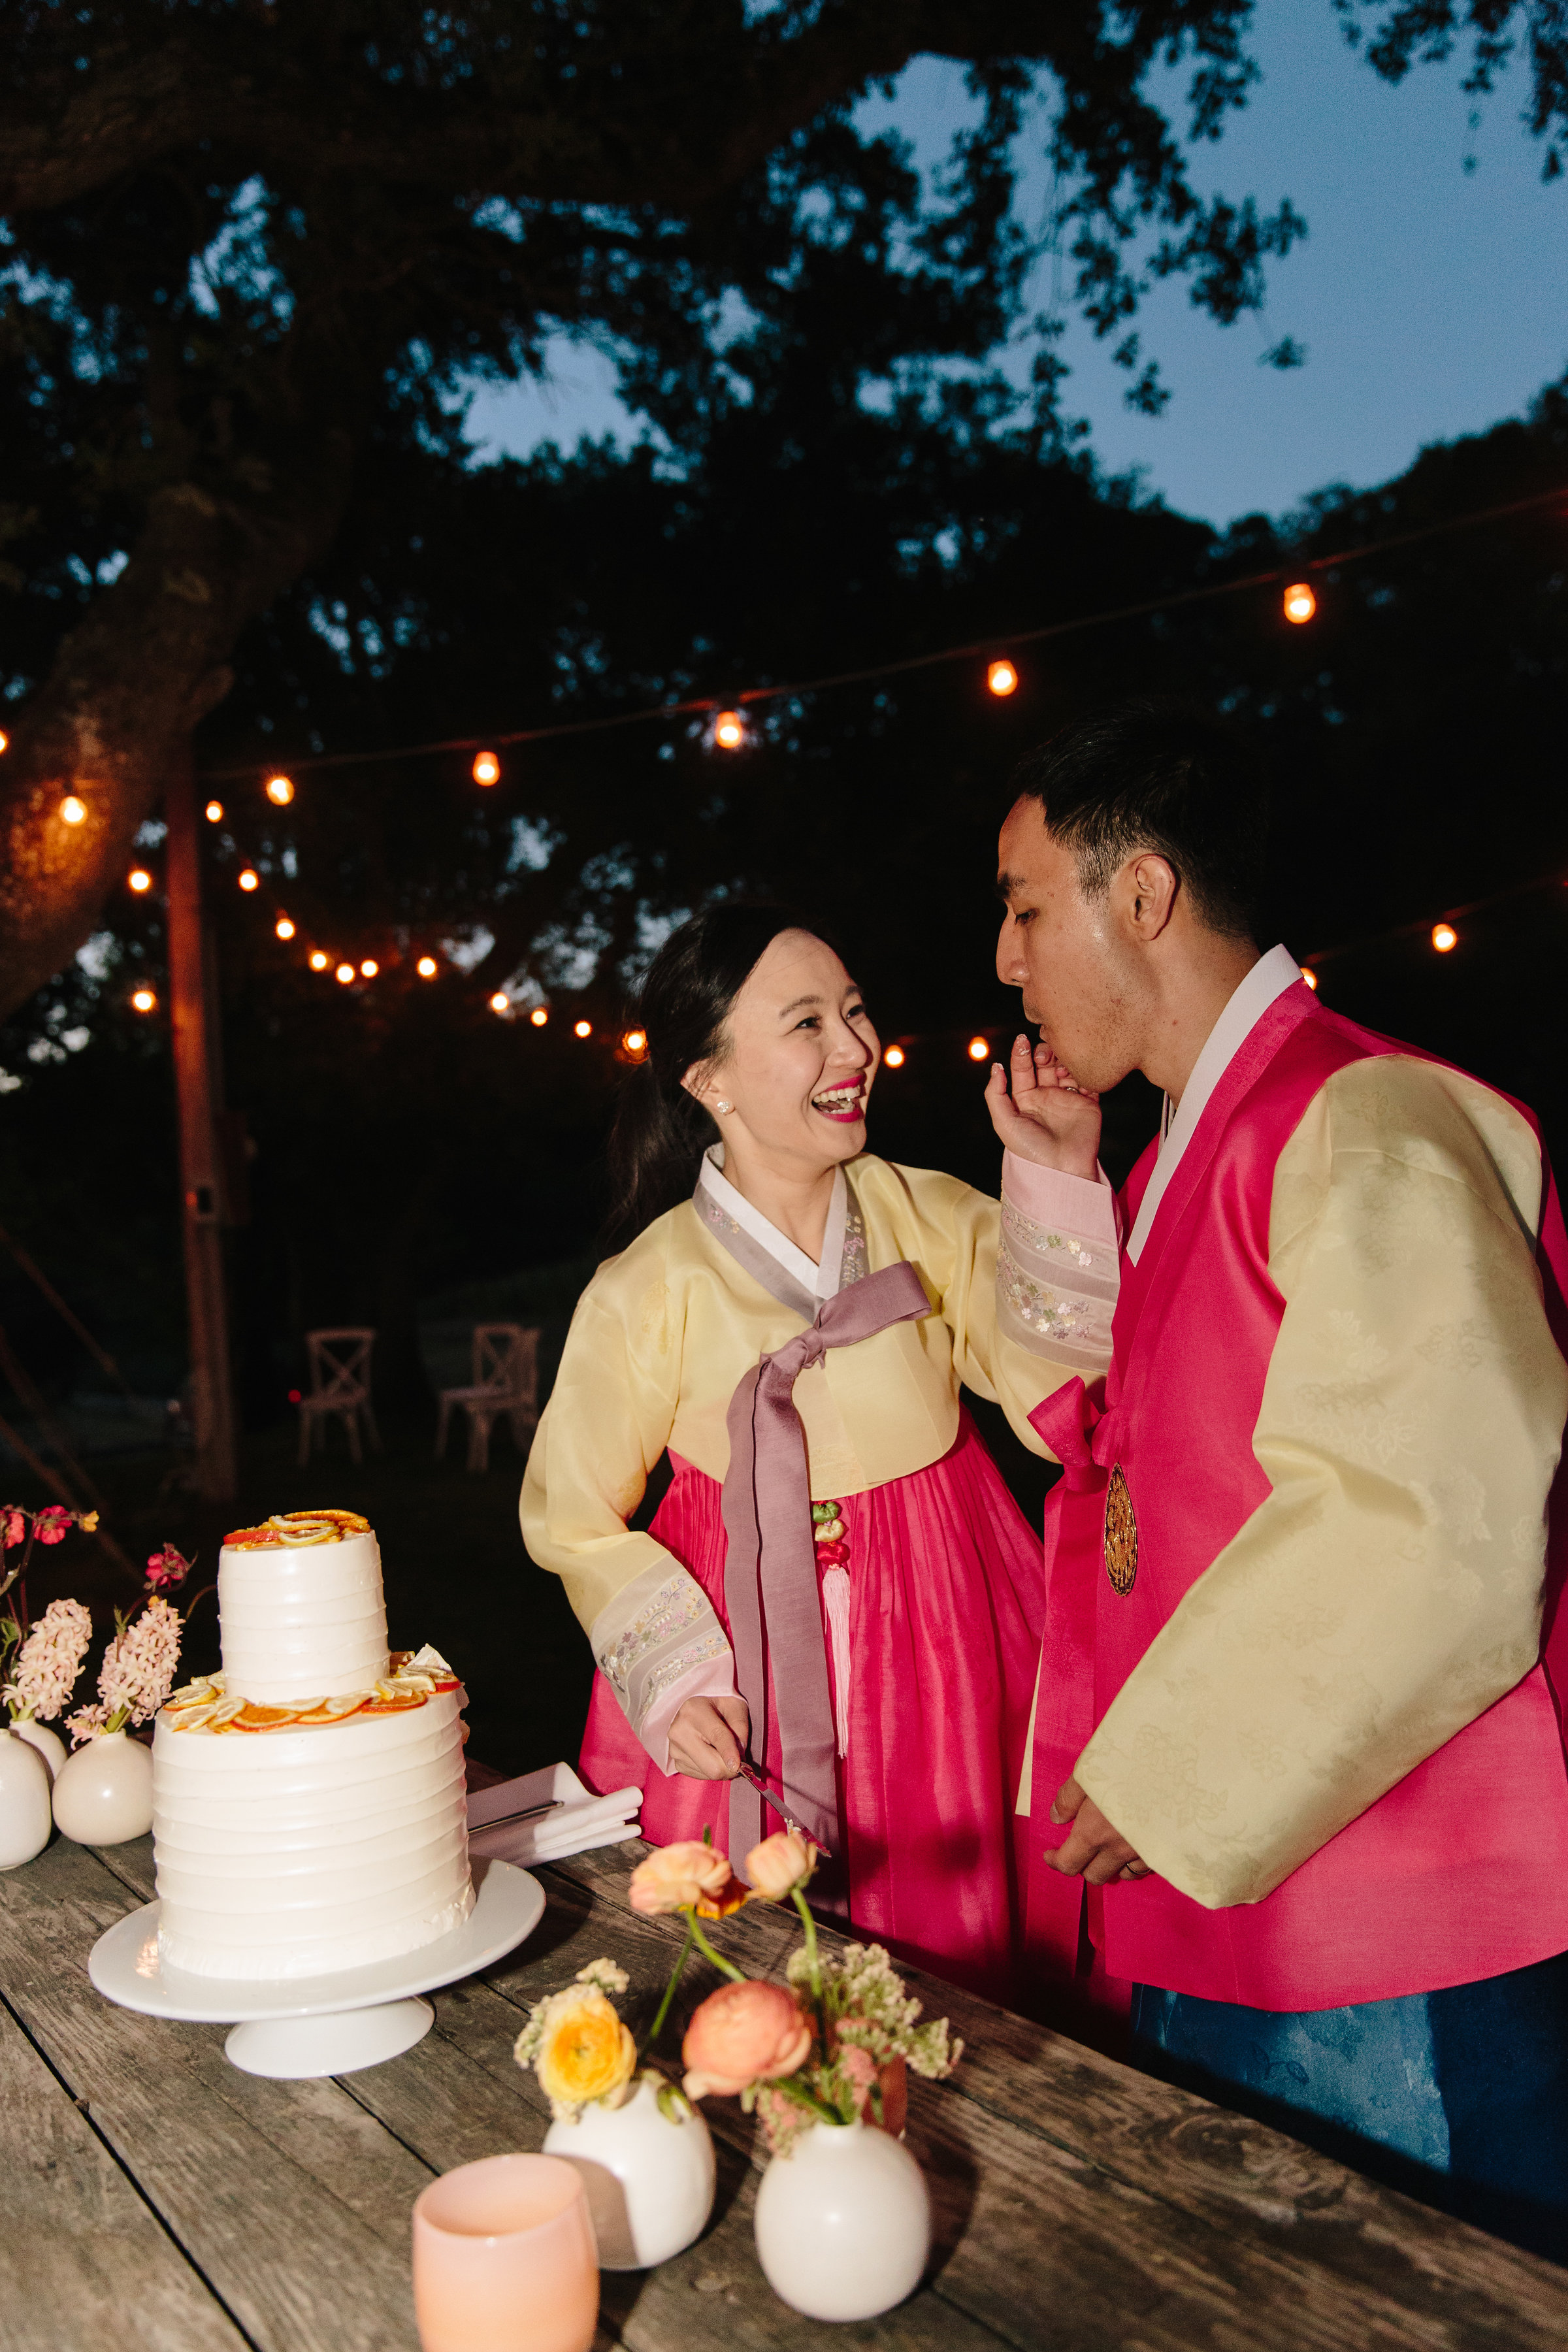 Cake Cutting at Scribe Winery Wedding - Cakebloom-Sonoma, CA - Simone-Anne-Photography